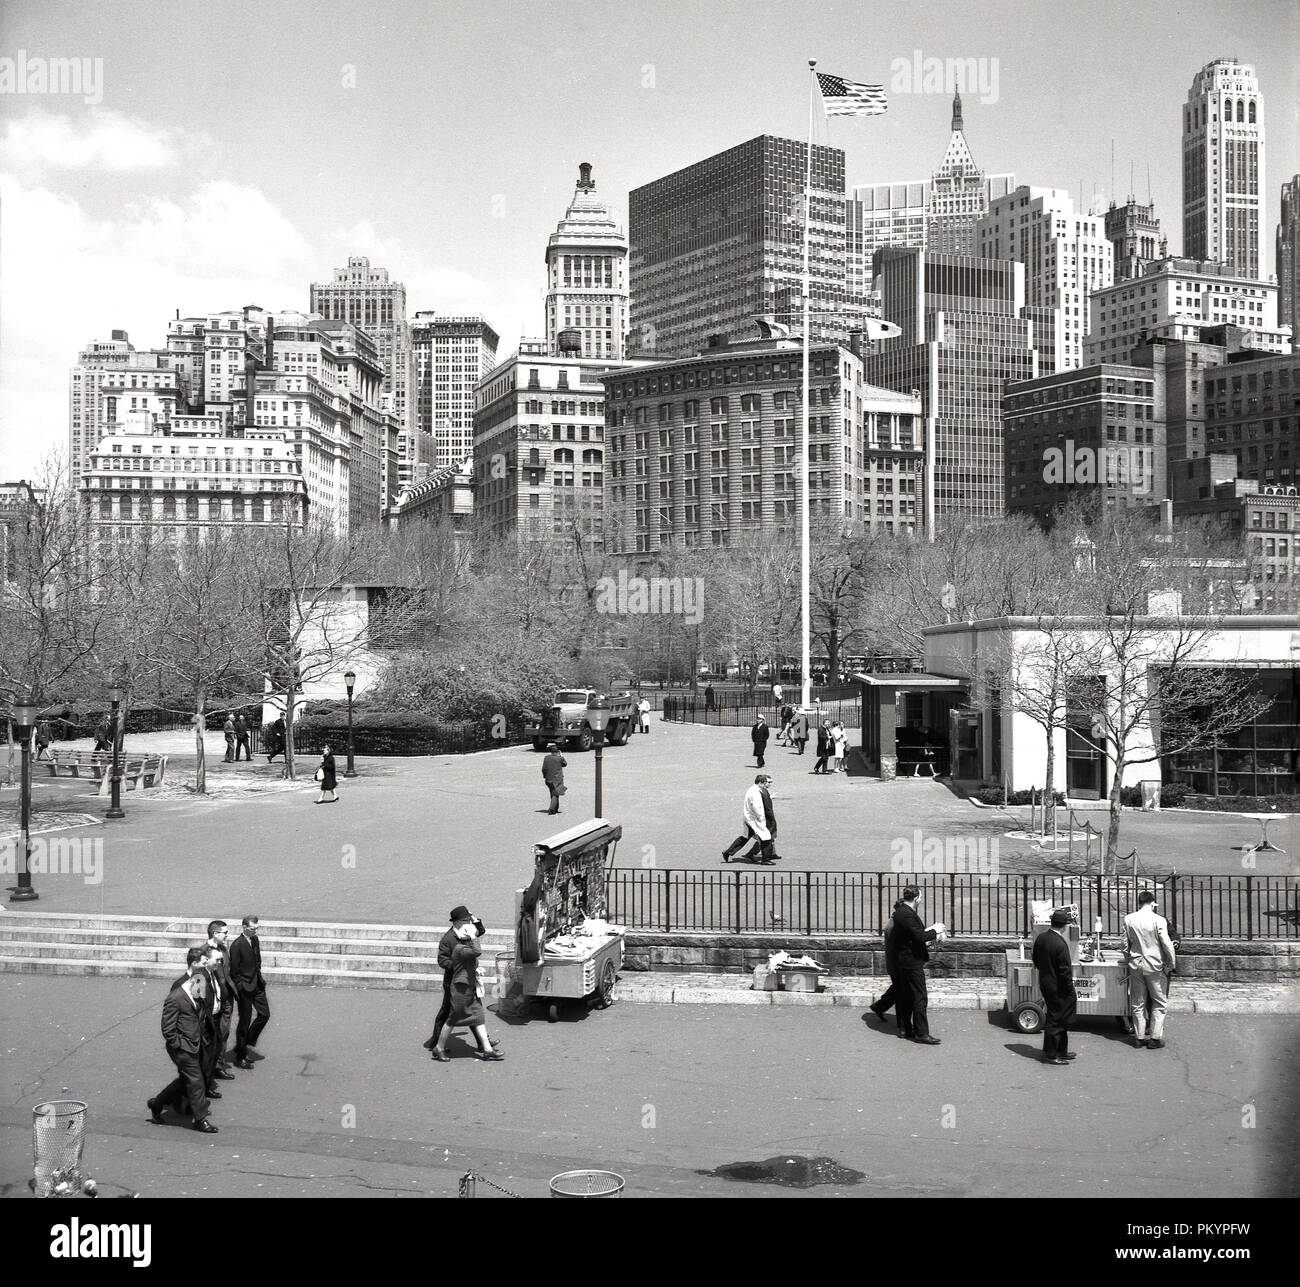 Central Park People: 1950s, Historical, People Walking On The Edge Of Central